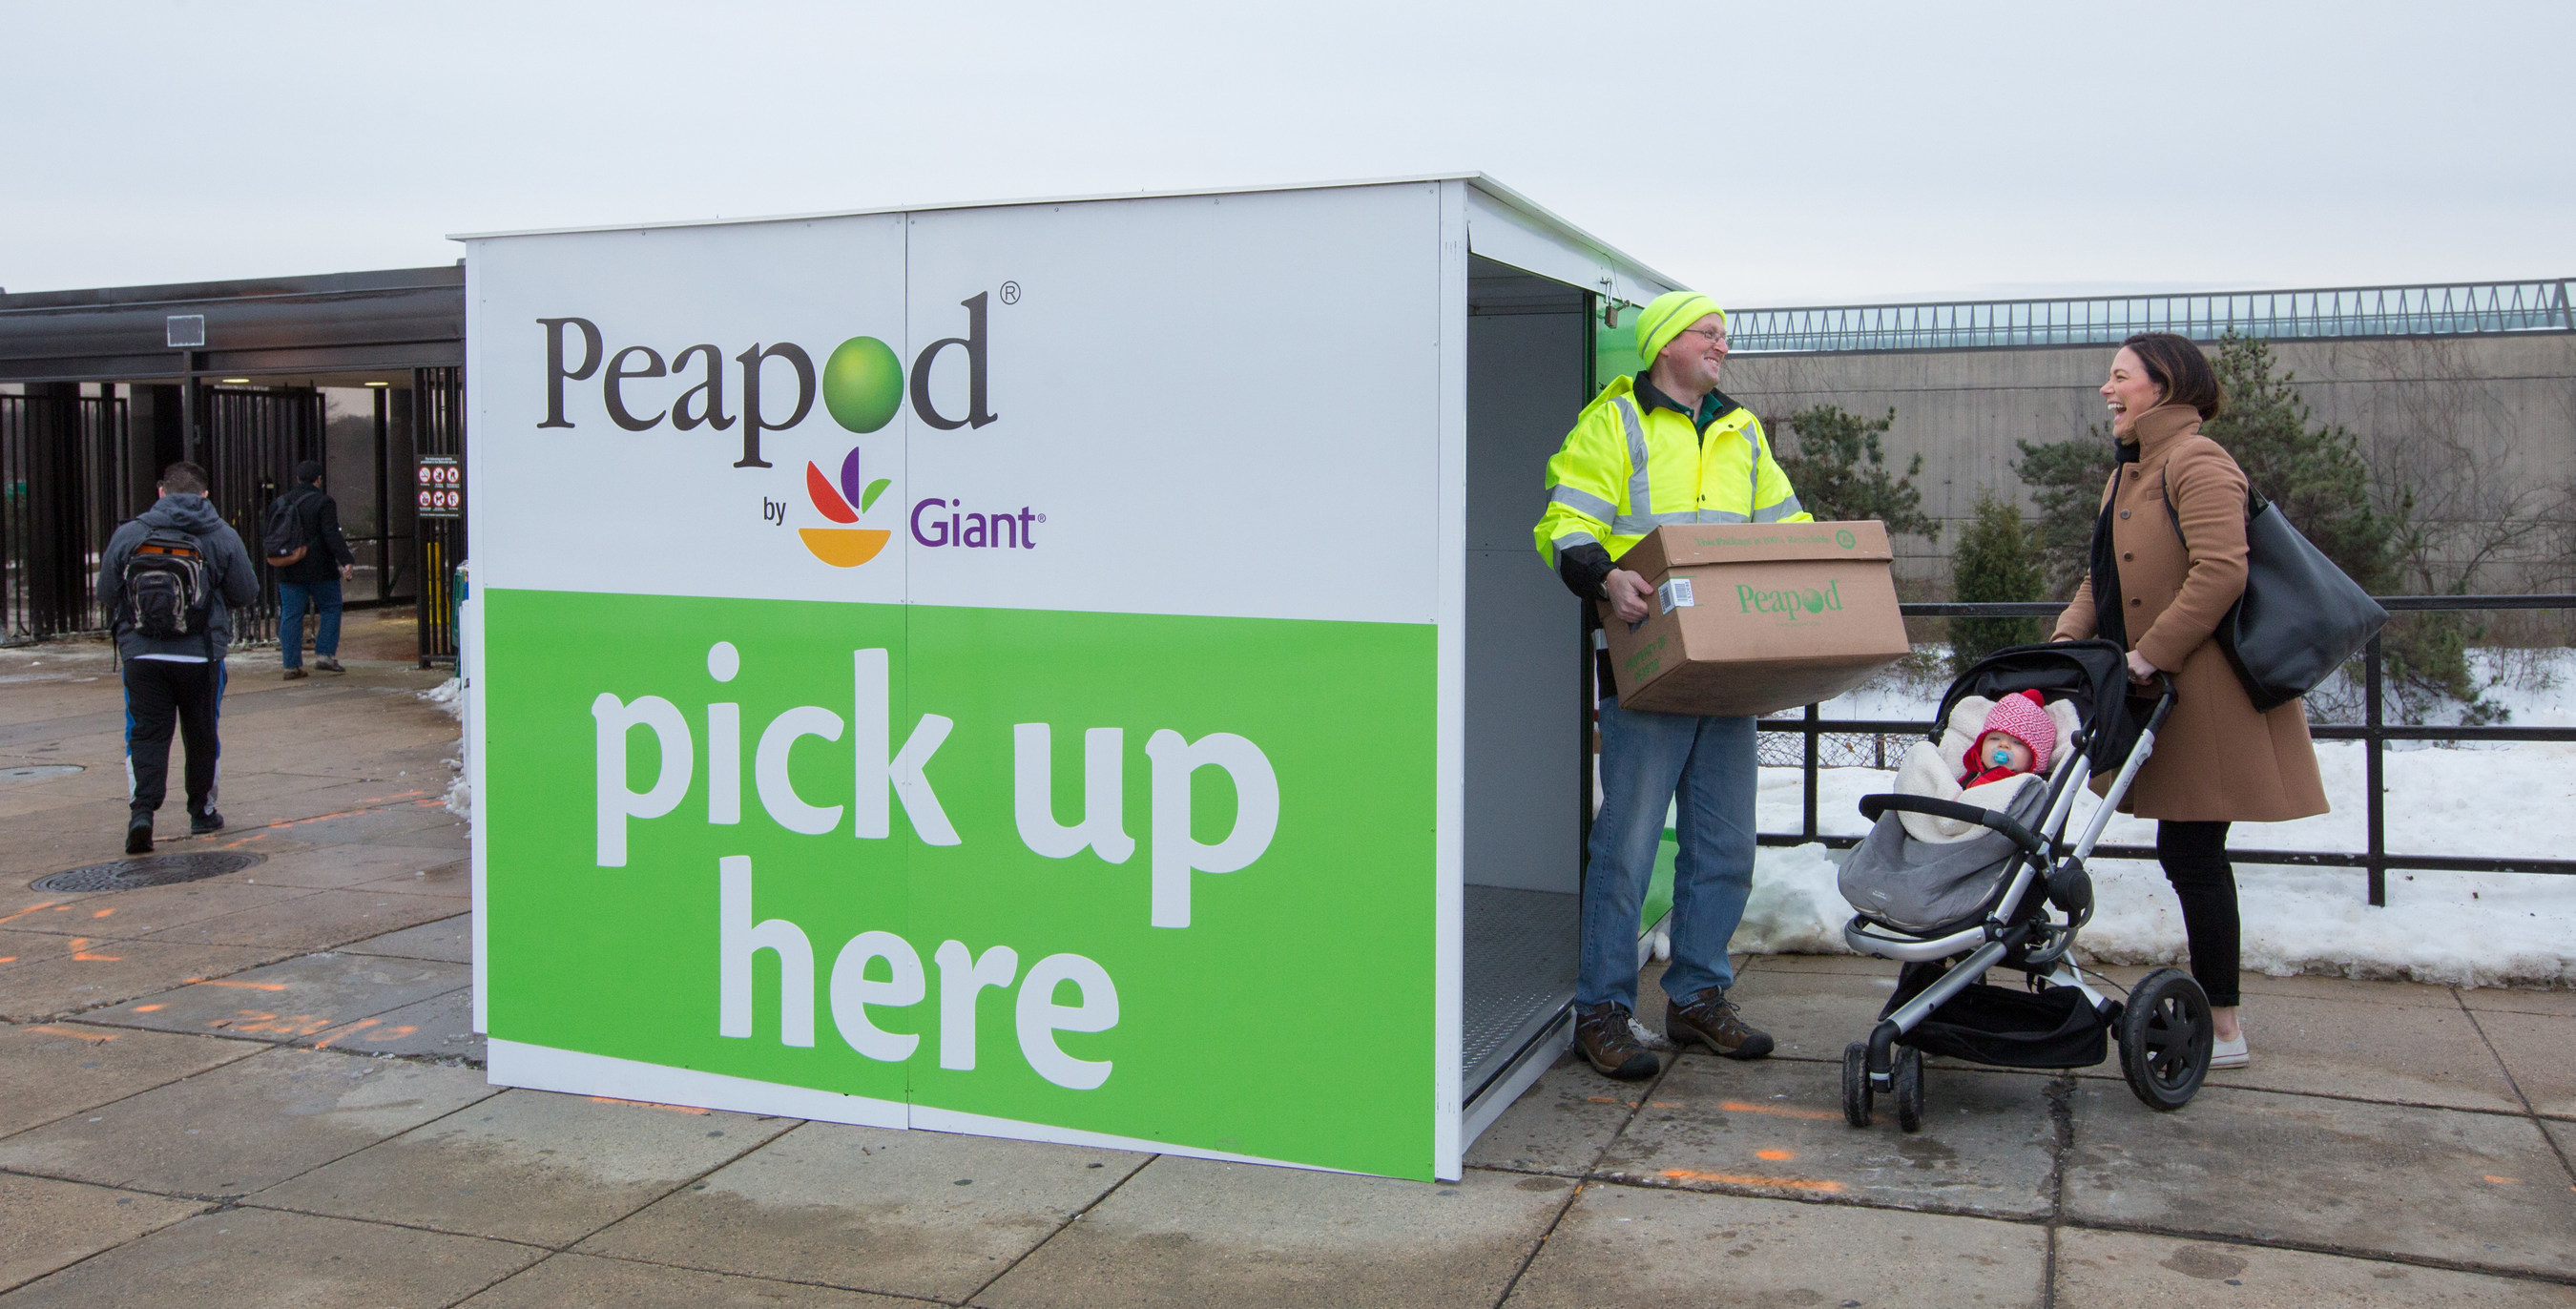 DRIVERS: GIANT FOOD PEAPOD